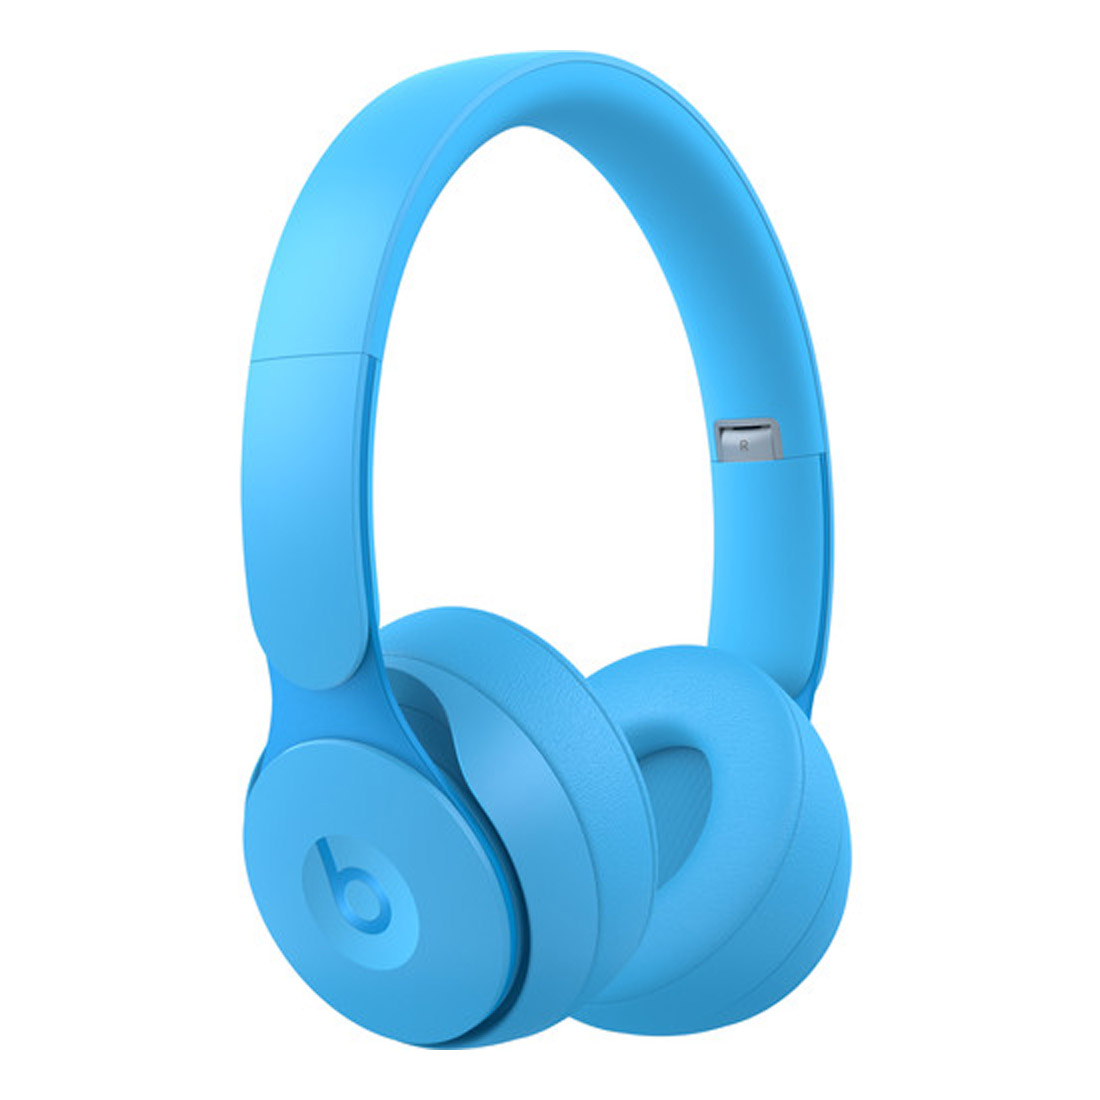 Beats Solo Pro Wireless Noise Cancelling Headphones - Light Blue